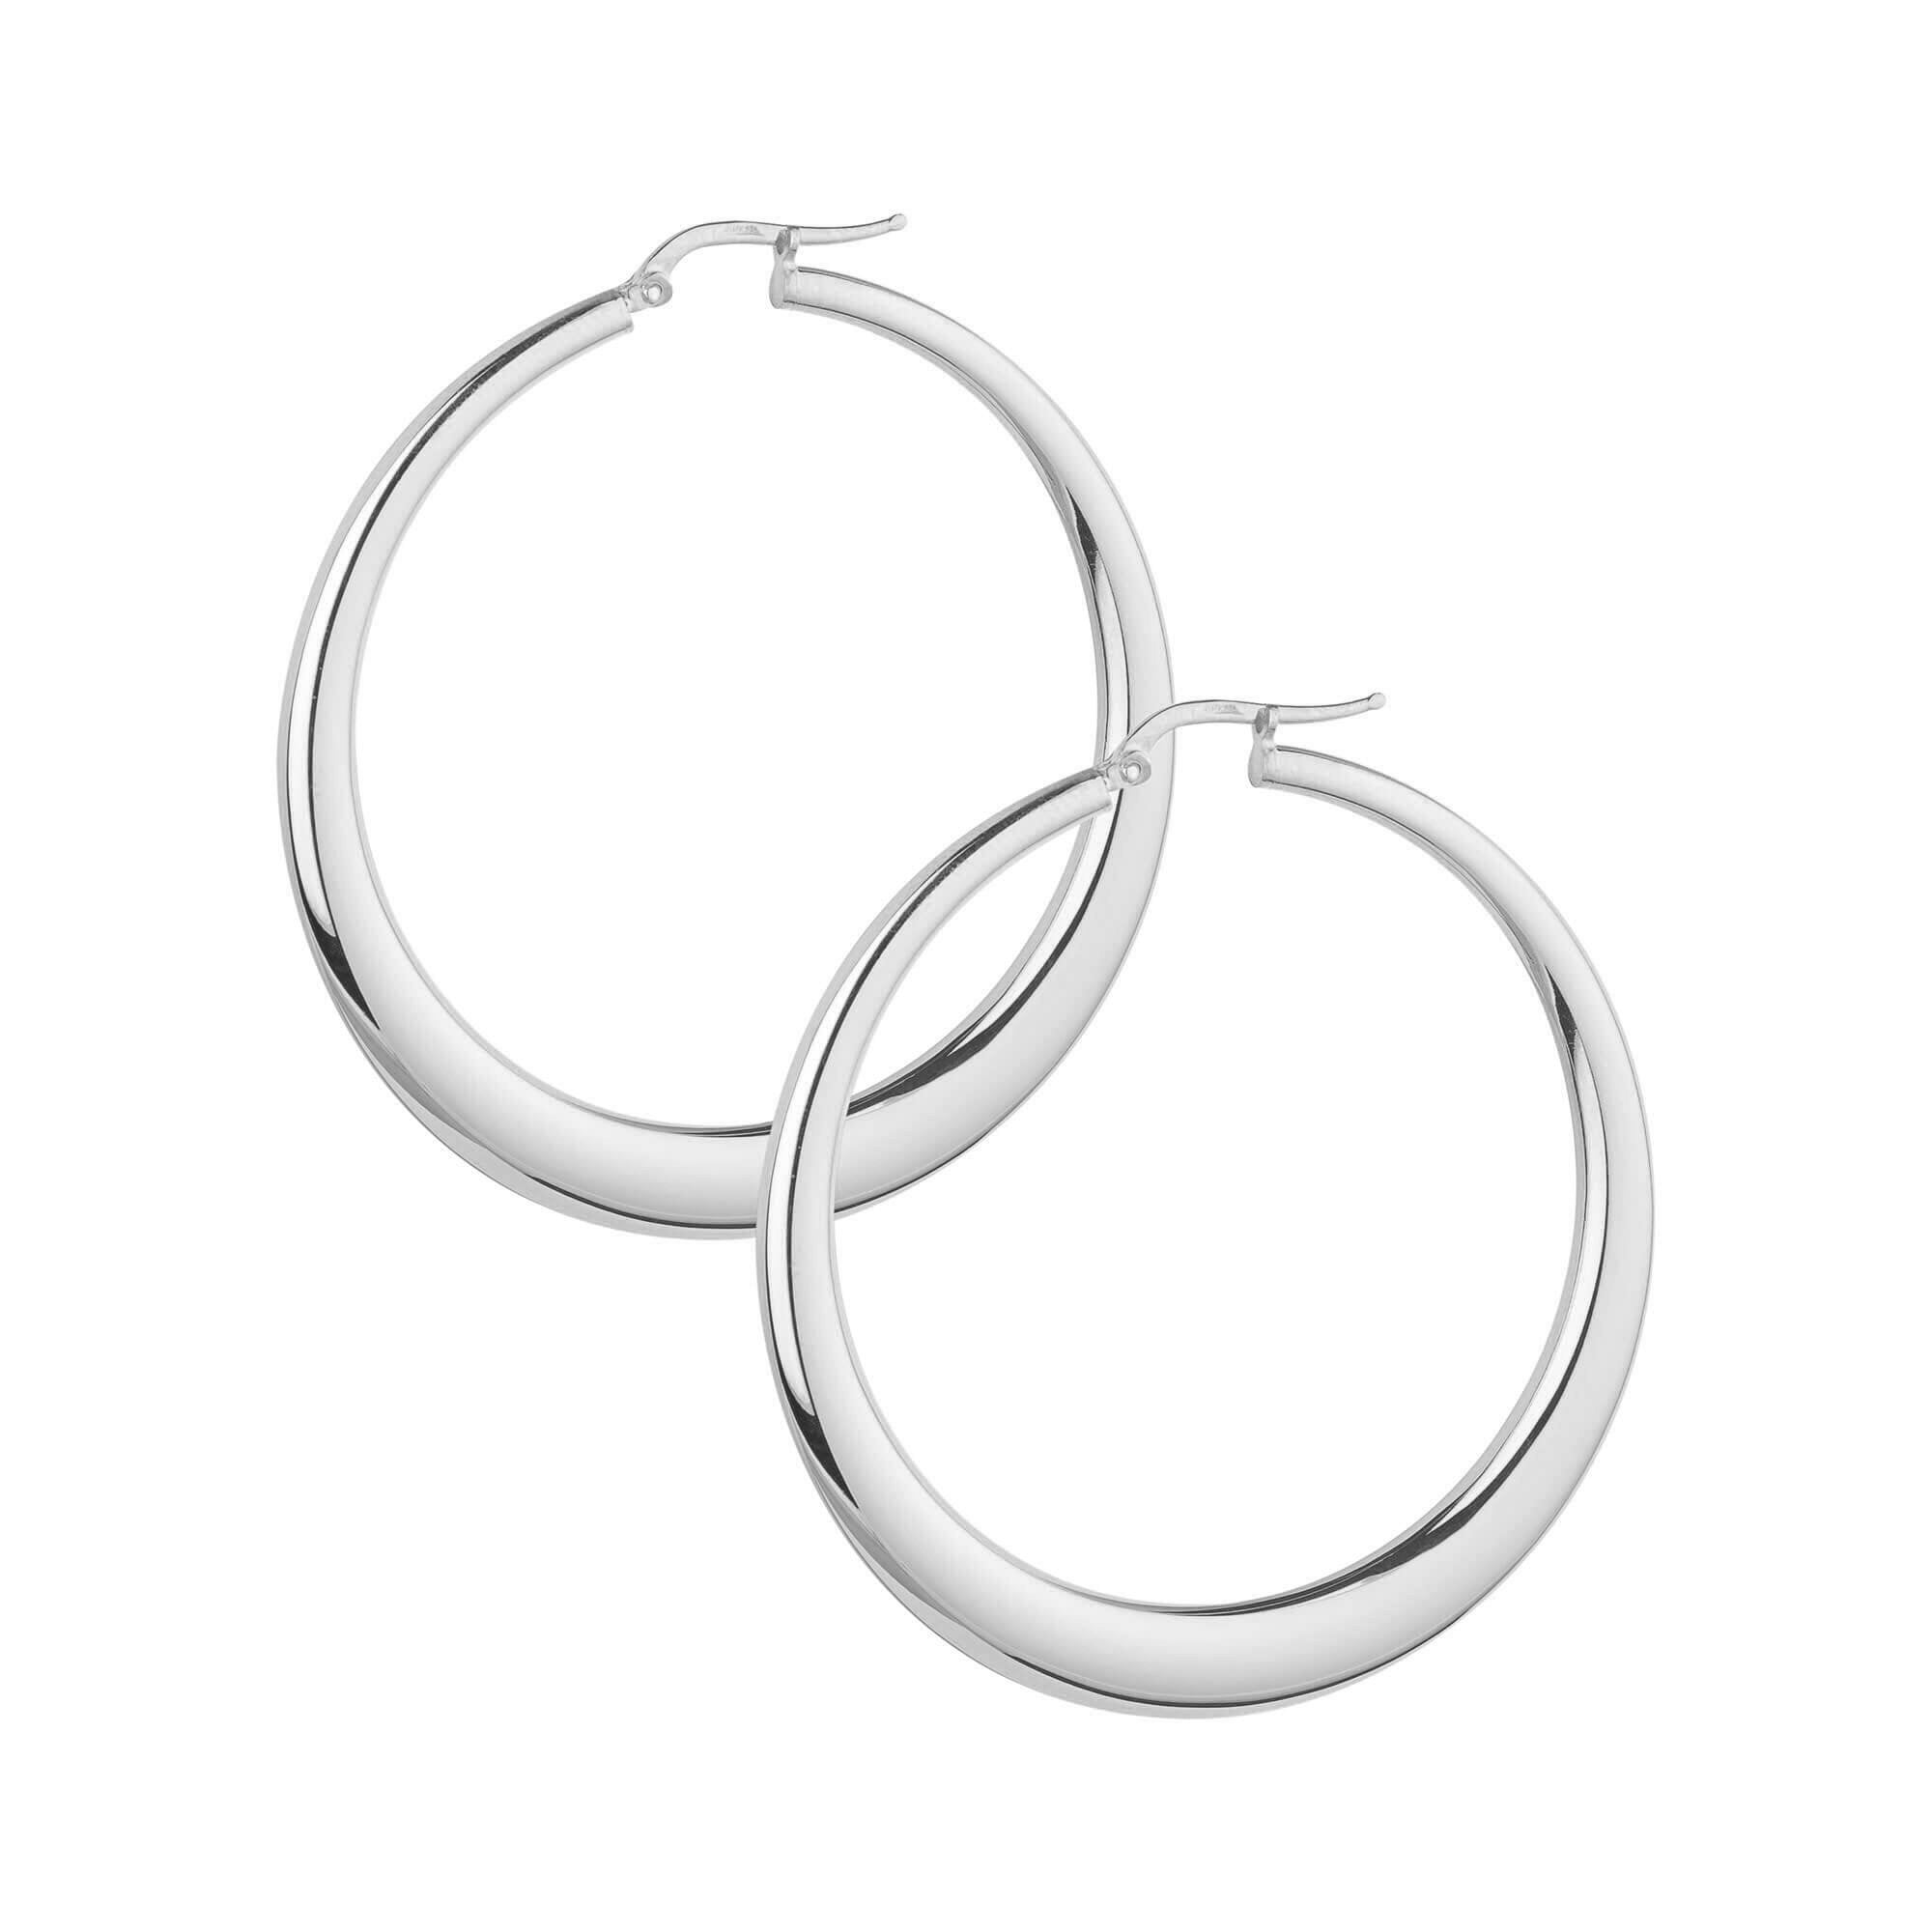 La PORTOFINO Gold - The Hoop Station 925 Sterling Silver Hoop Earrings Gold Huggies